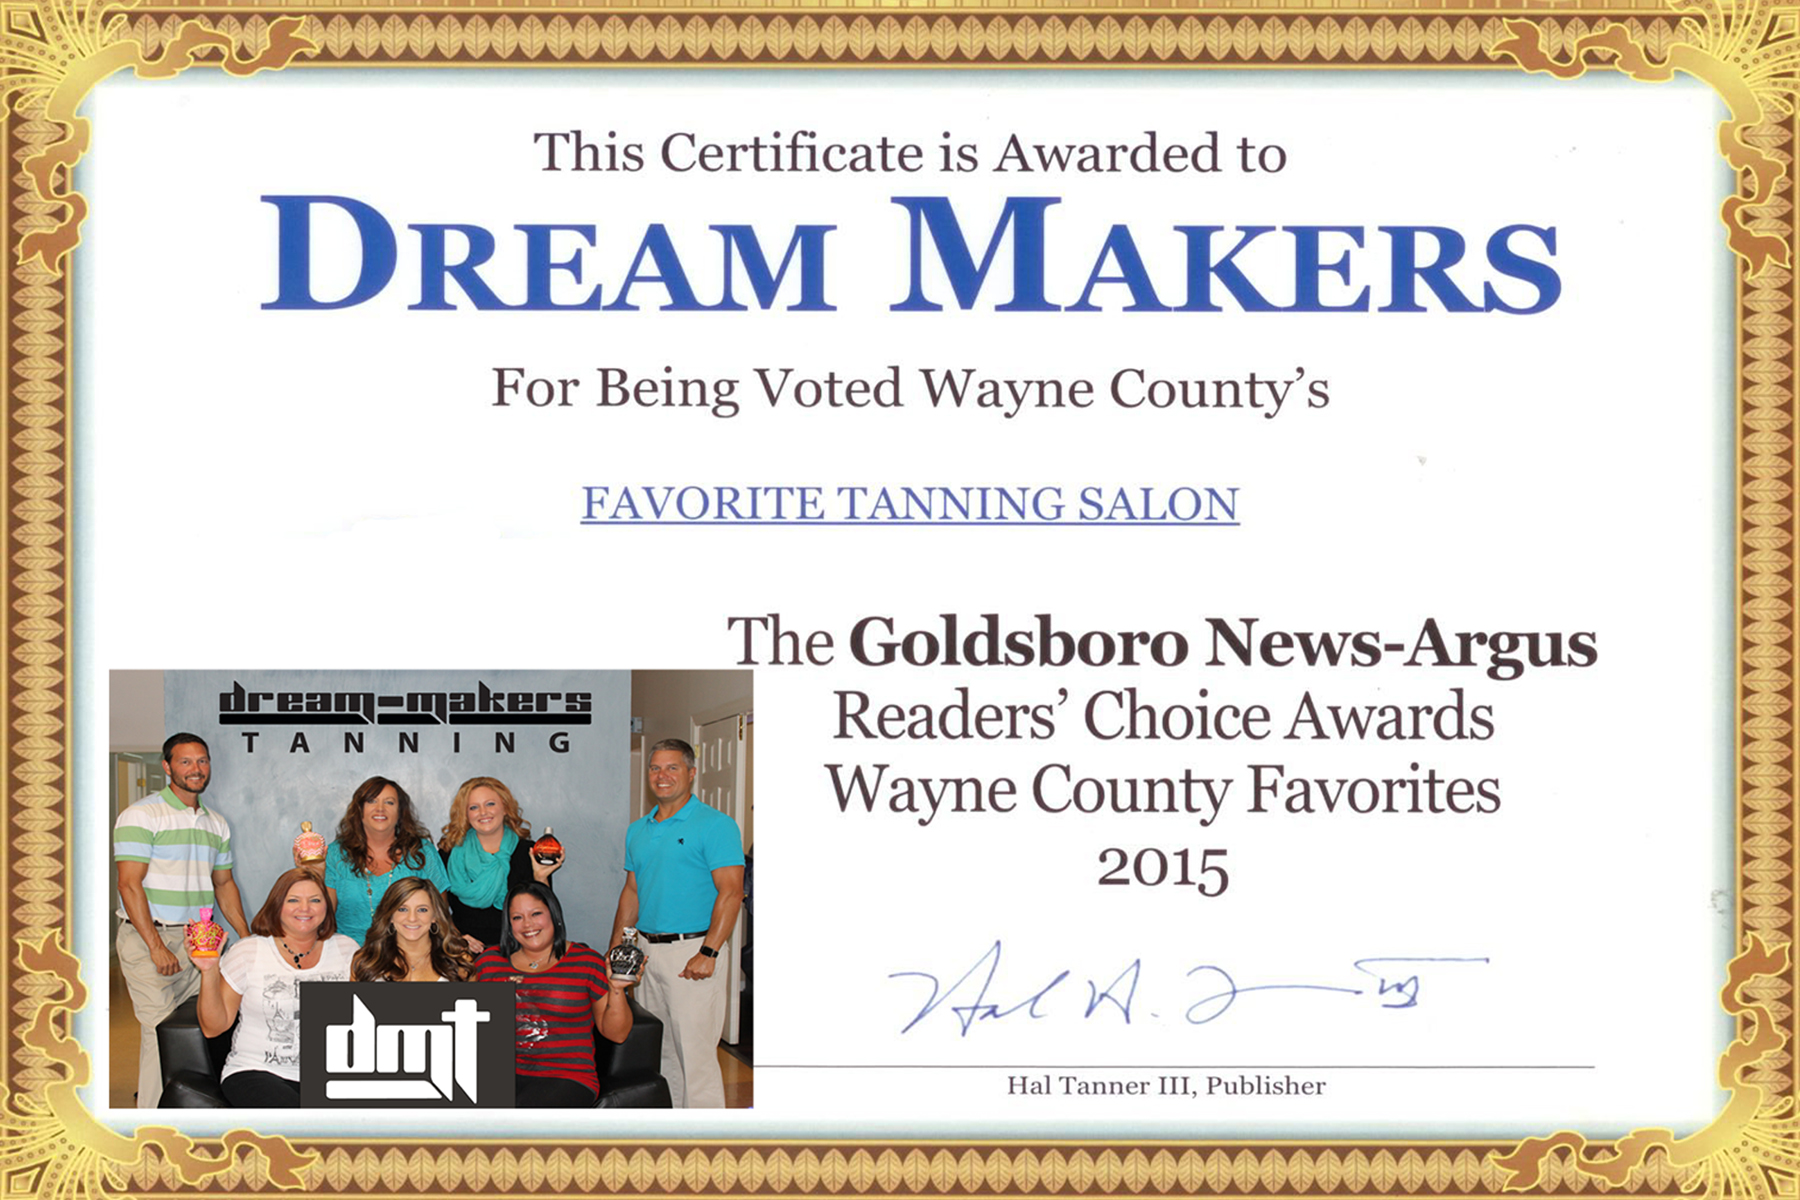 Voted Wayne County's Favorite Tanning Salon